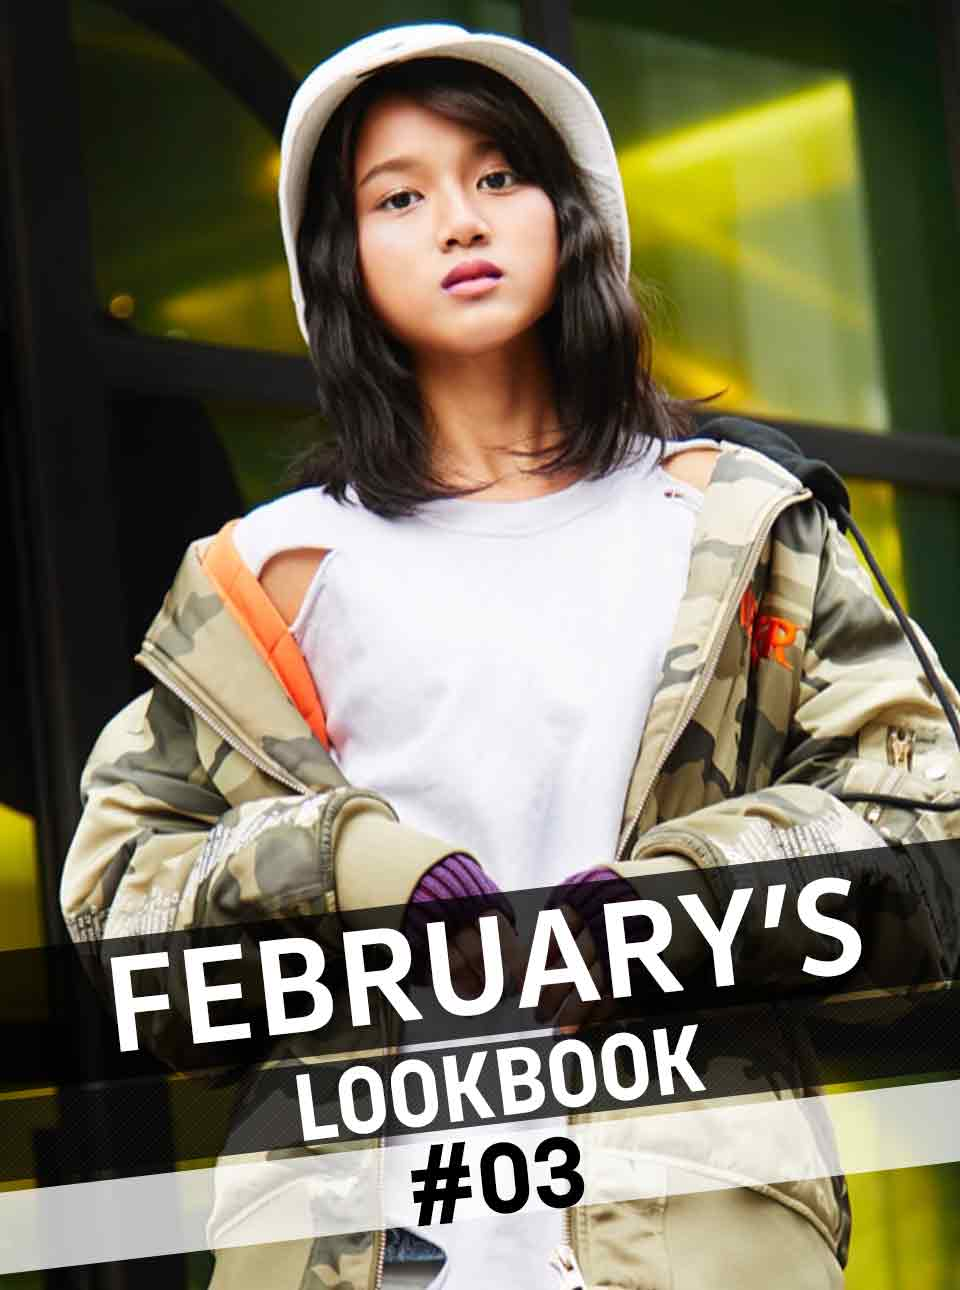 FEBRUARY'S LOOKBOOK vol.3